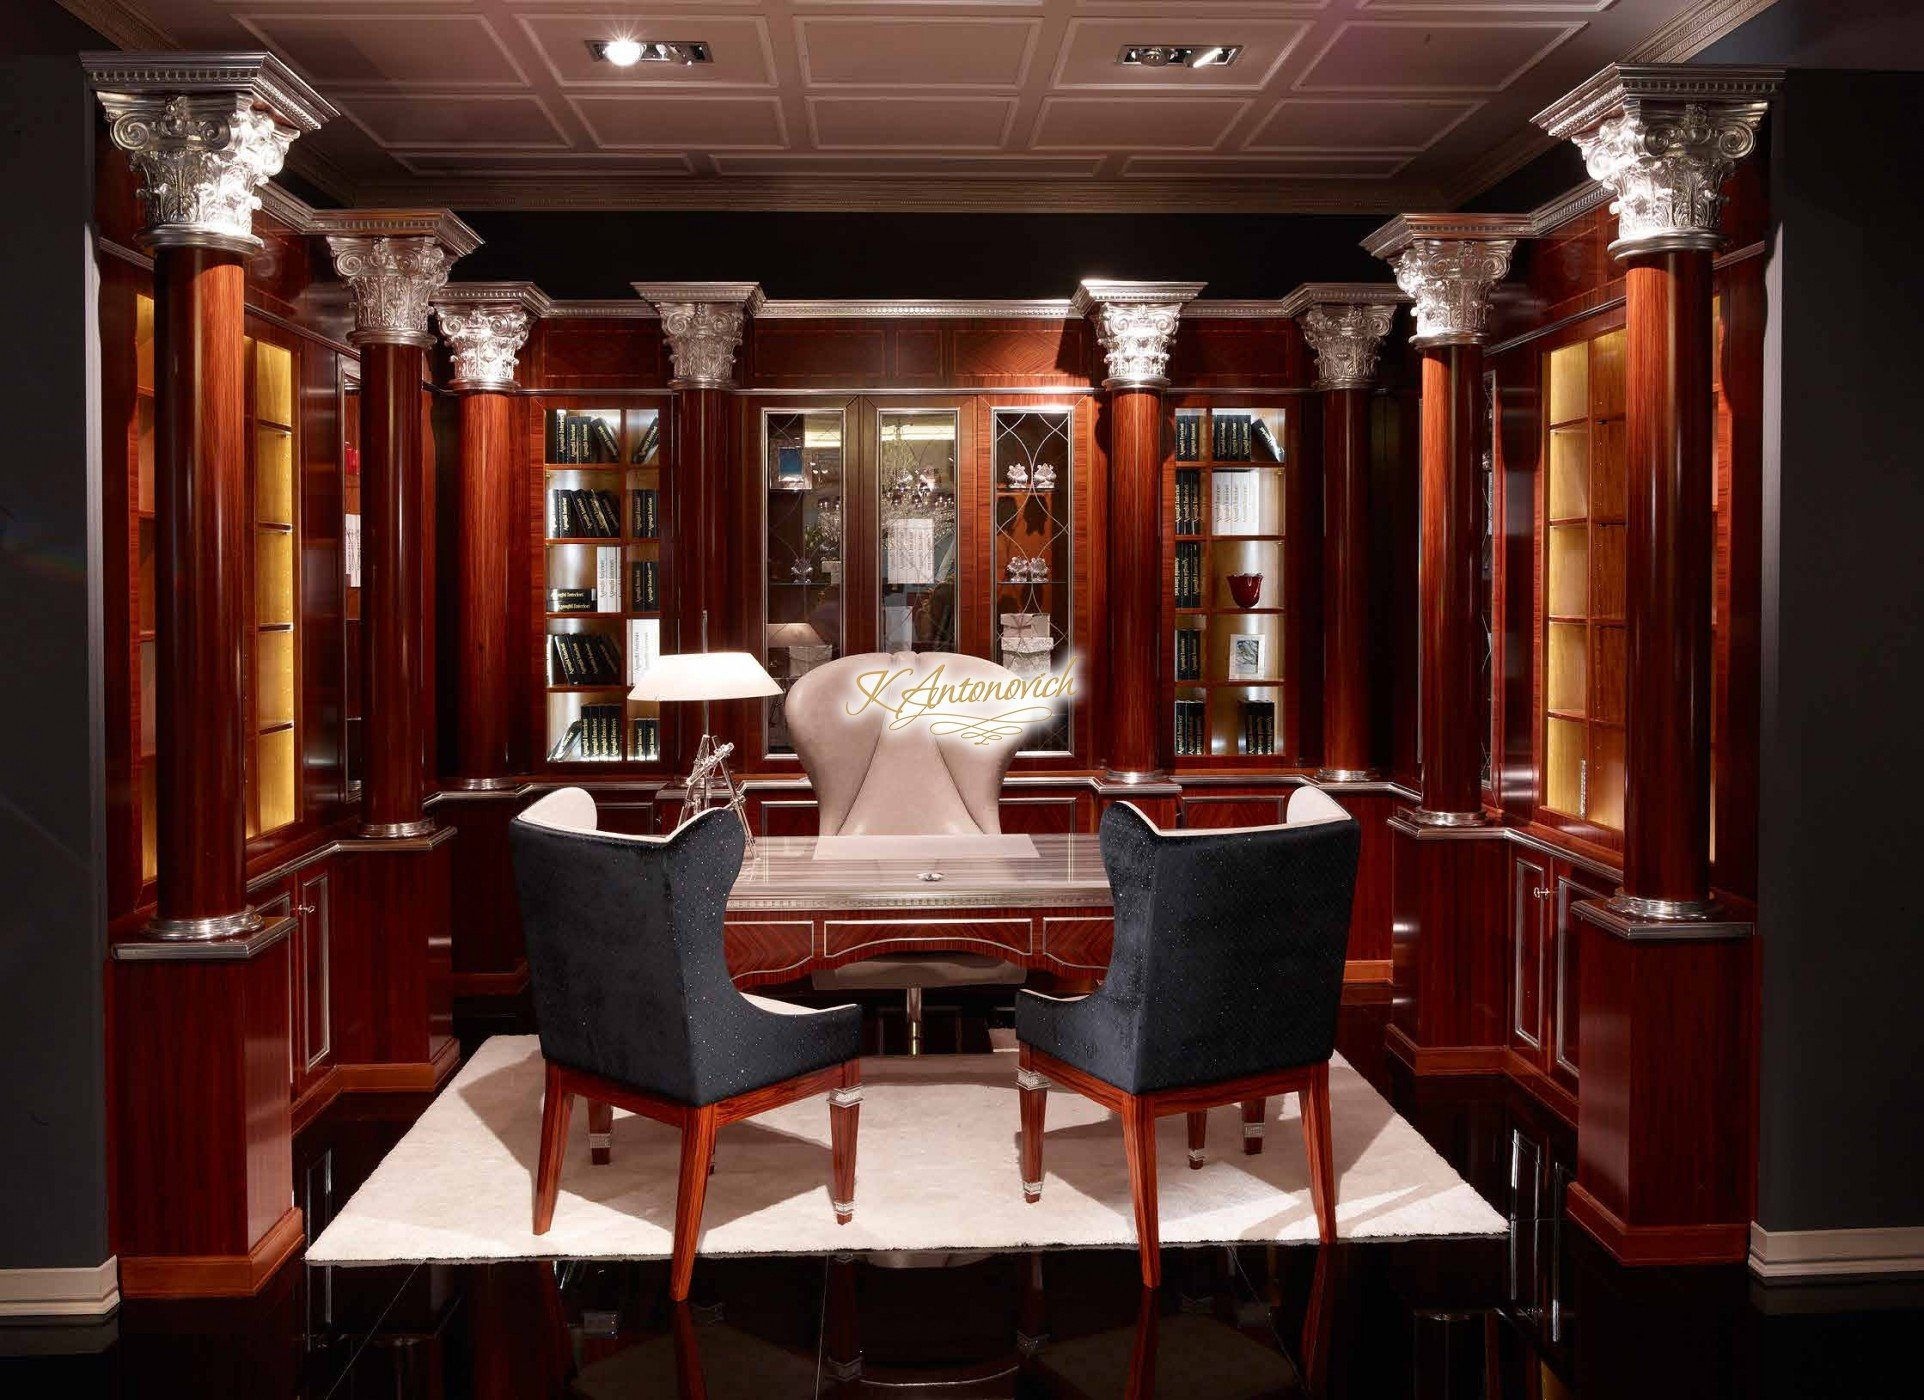 living room restaurant abu dhabi traditional rooms pictures office interiors in classic style